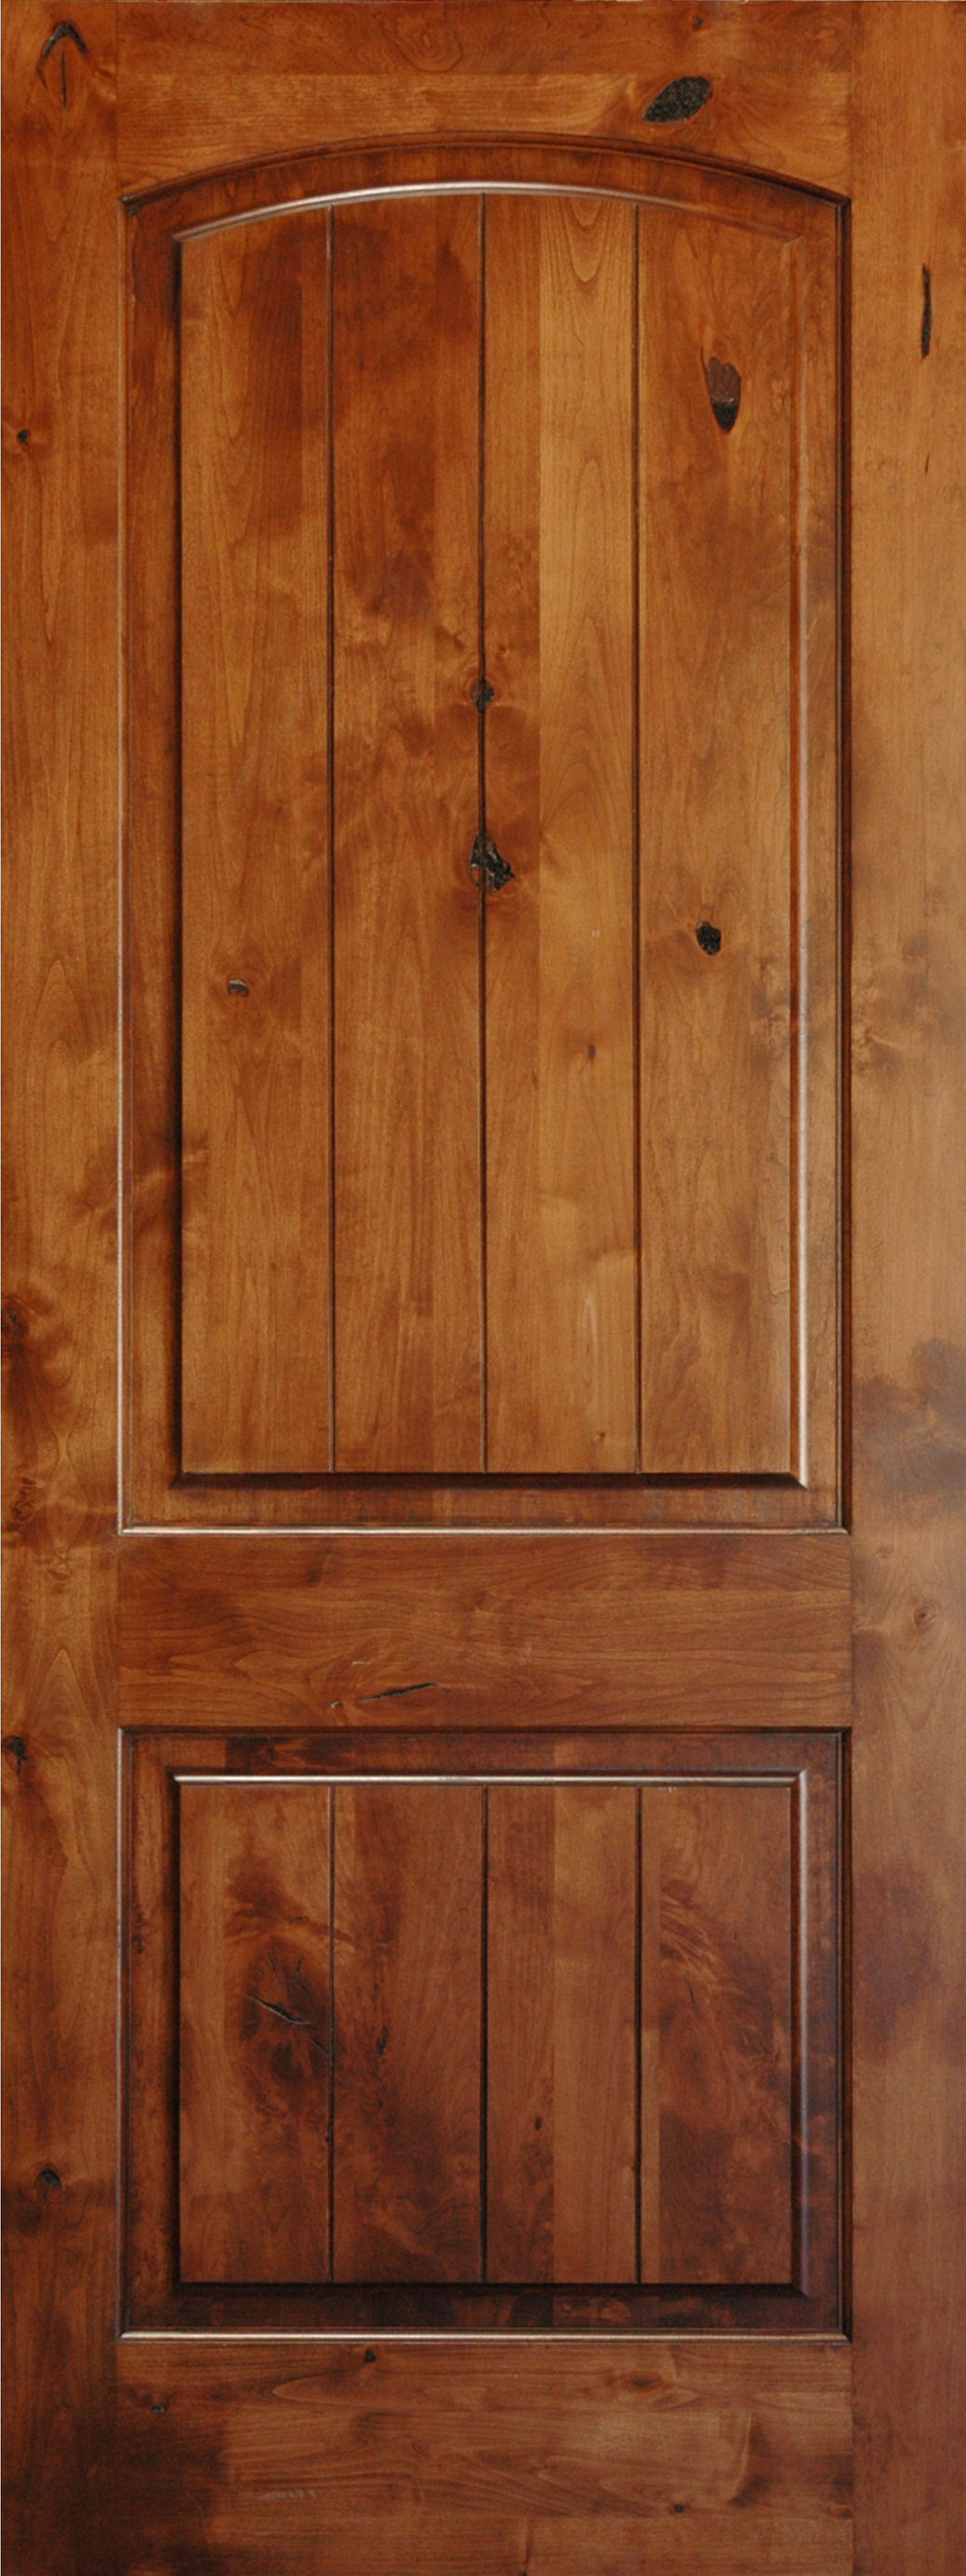 Knotty alder 8 39 v groove arch 2 panel wood interior doors for Knotty alder wood doors